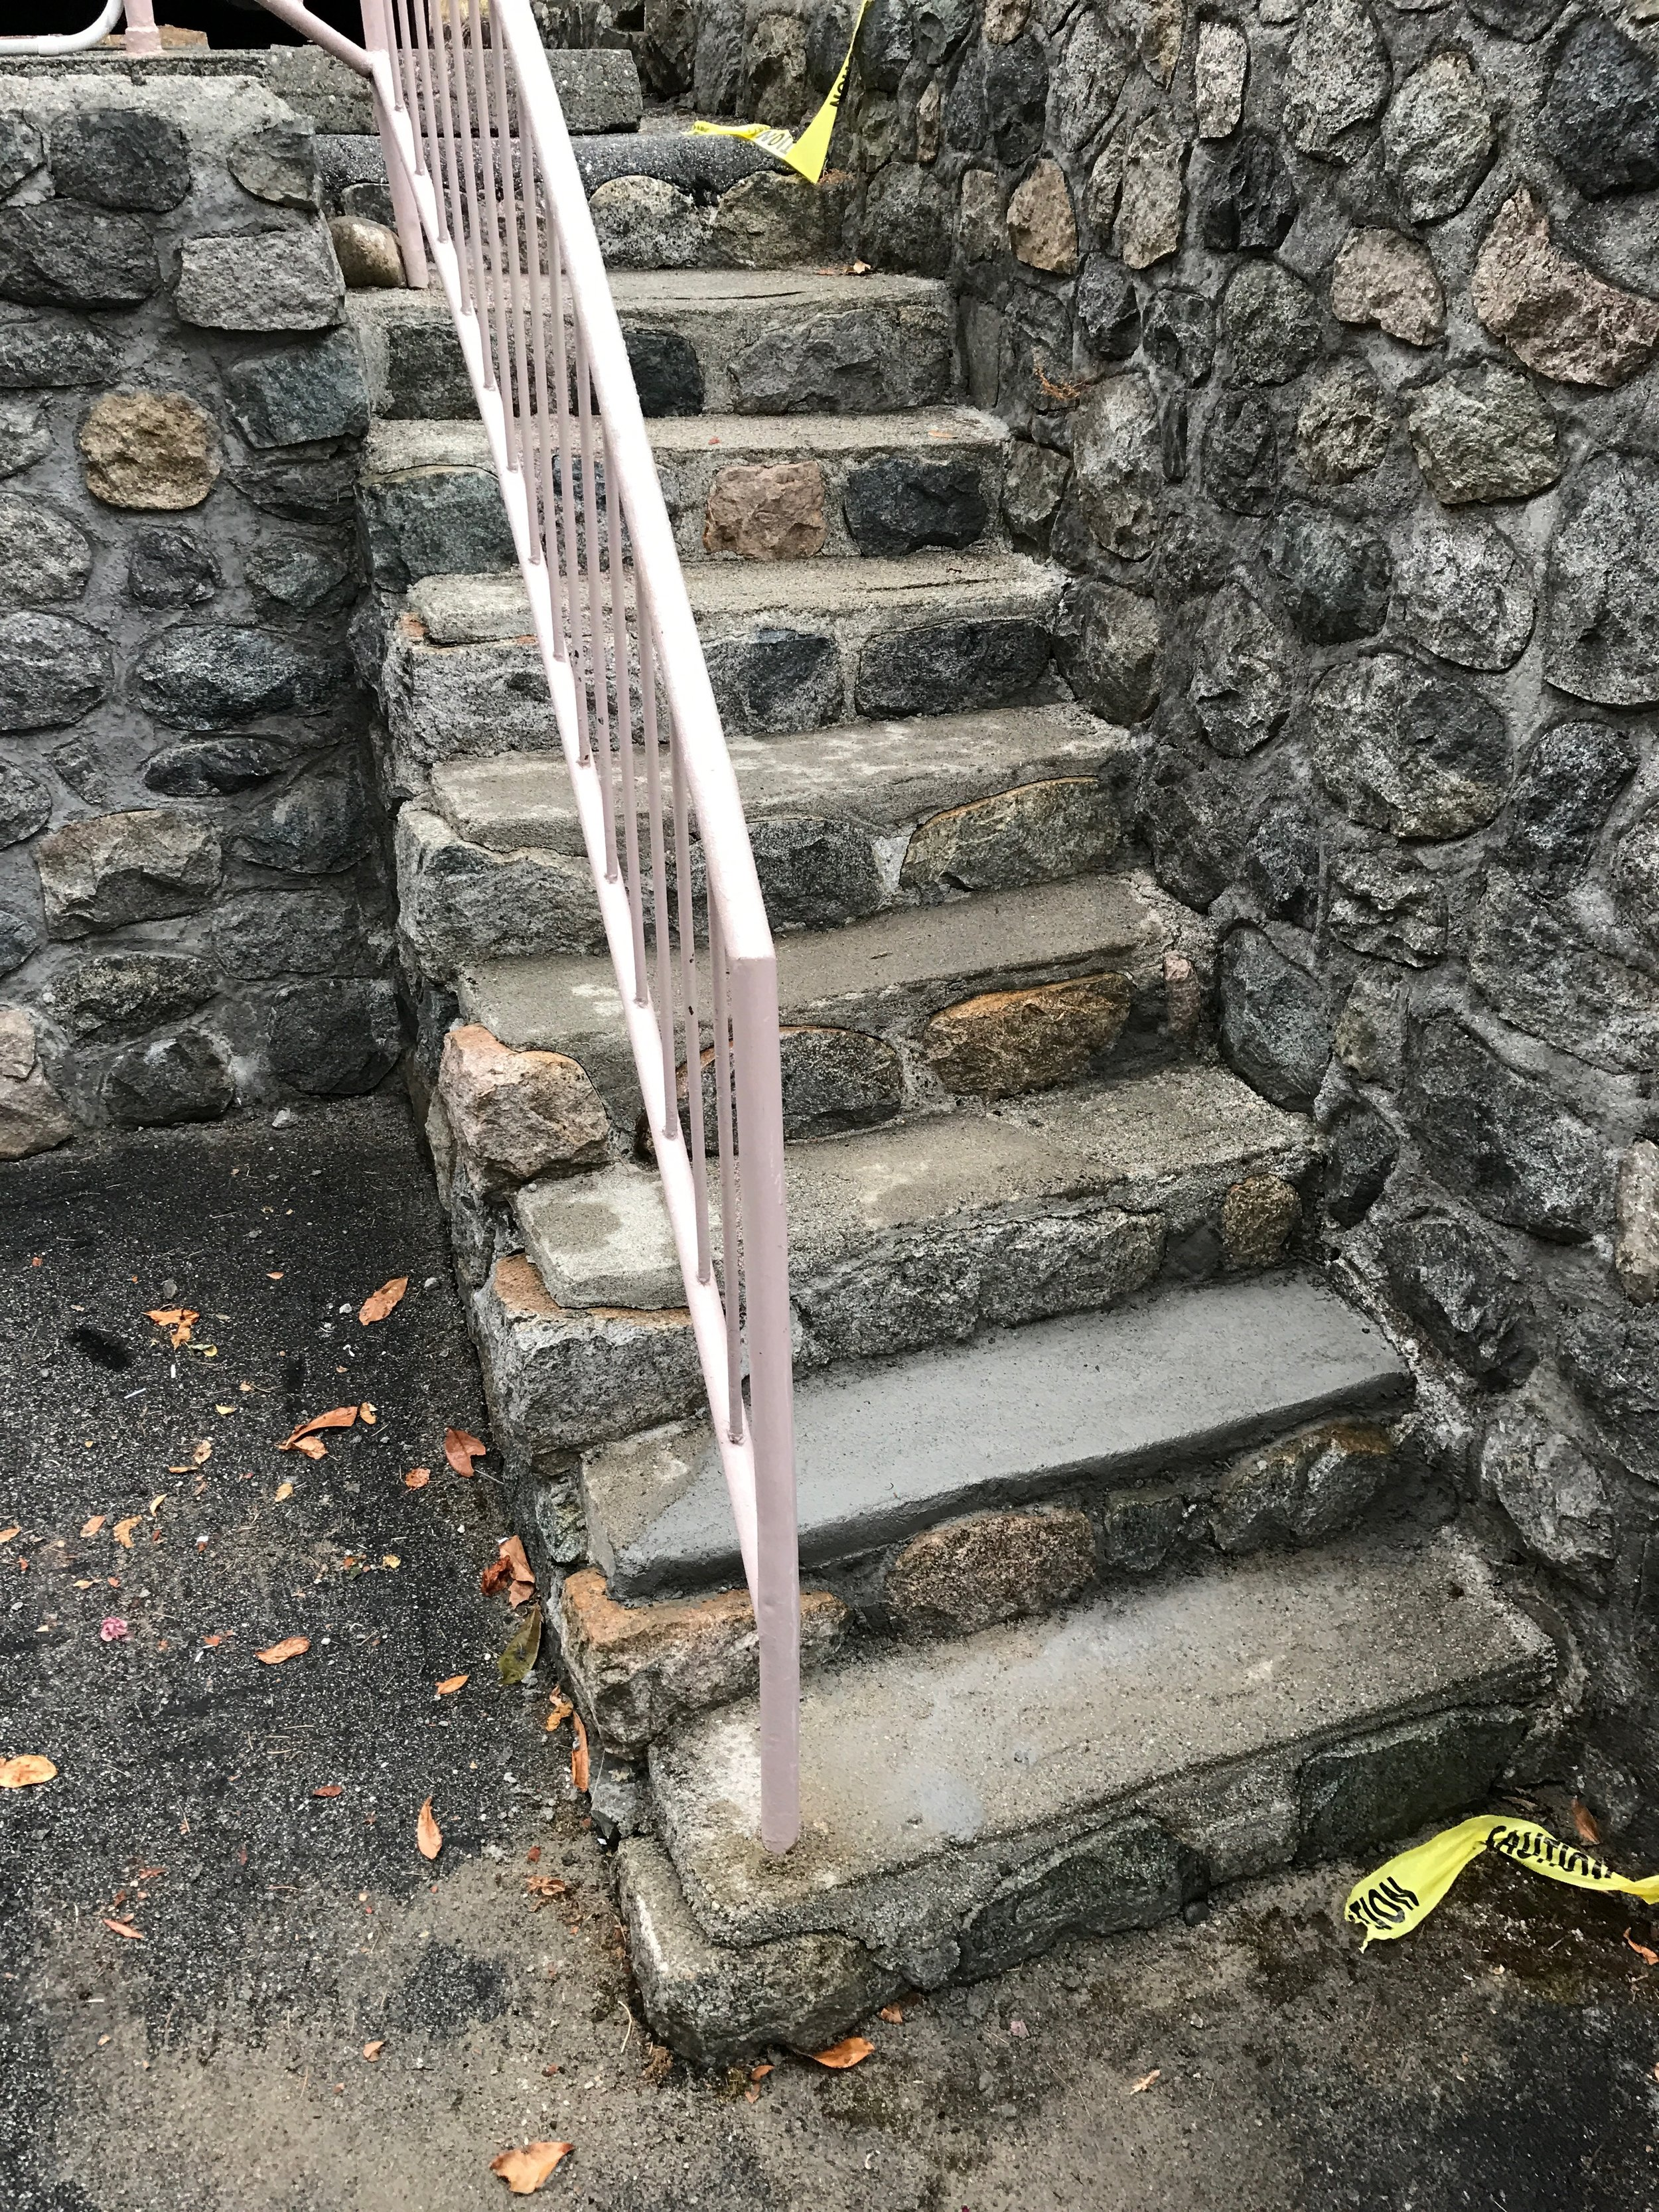 I was in need of emergency stair repair as it was a hazard to the residents. They came out the next day to fix it.